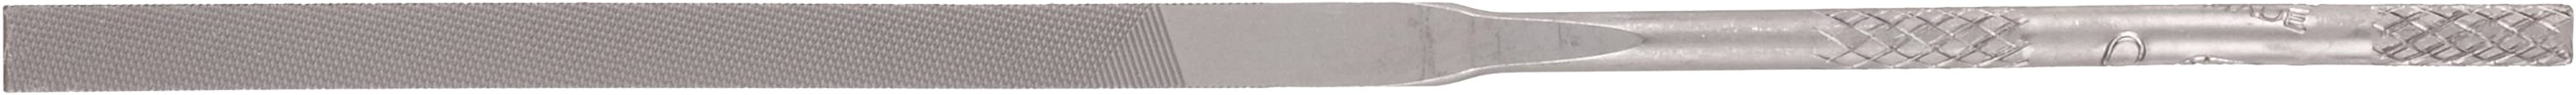 "Nicholson Needle File with Handle, Swiss Pattern, Double Cut, Rectangular, #2 Coarseness, 6-1/4"" Length"